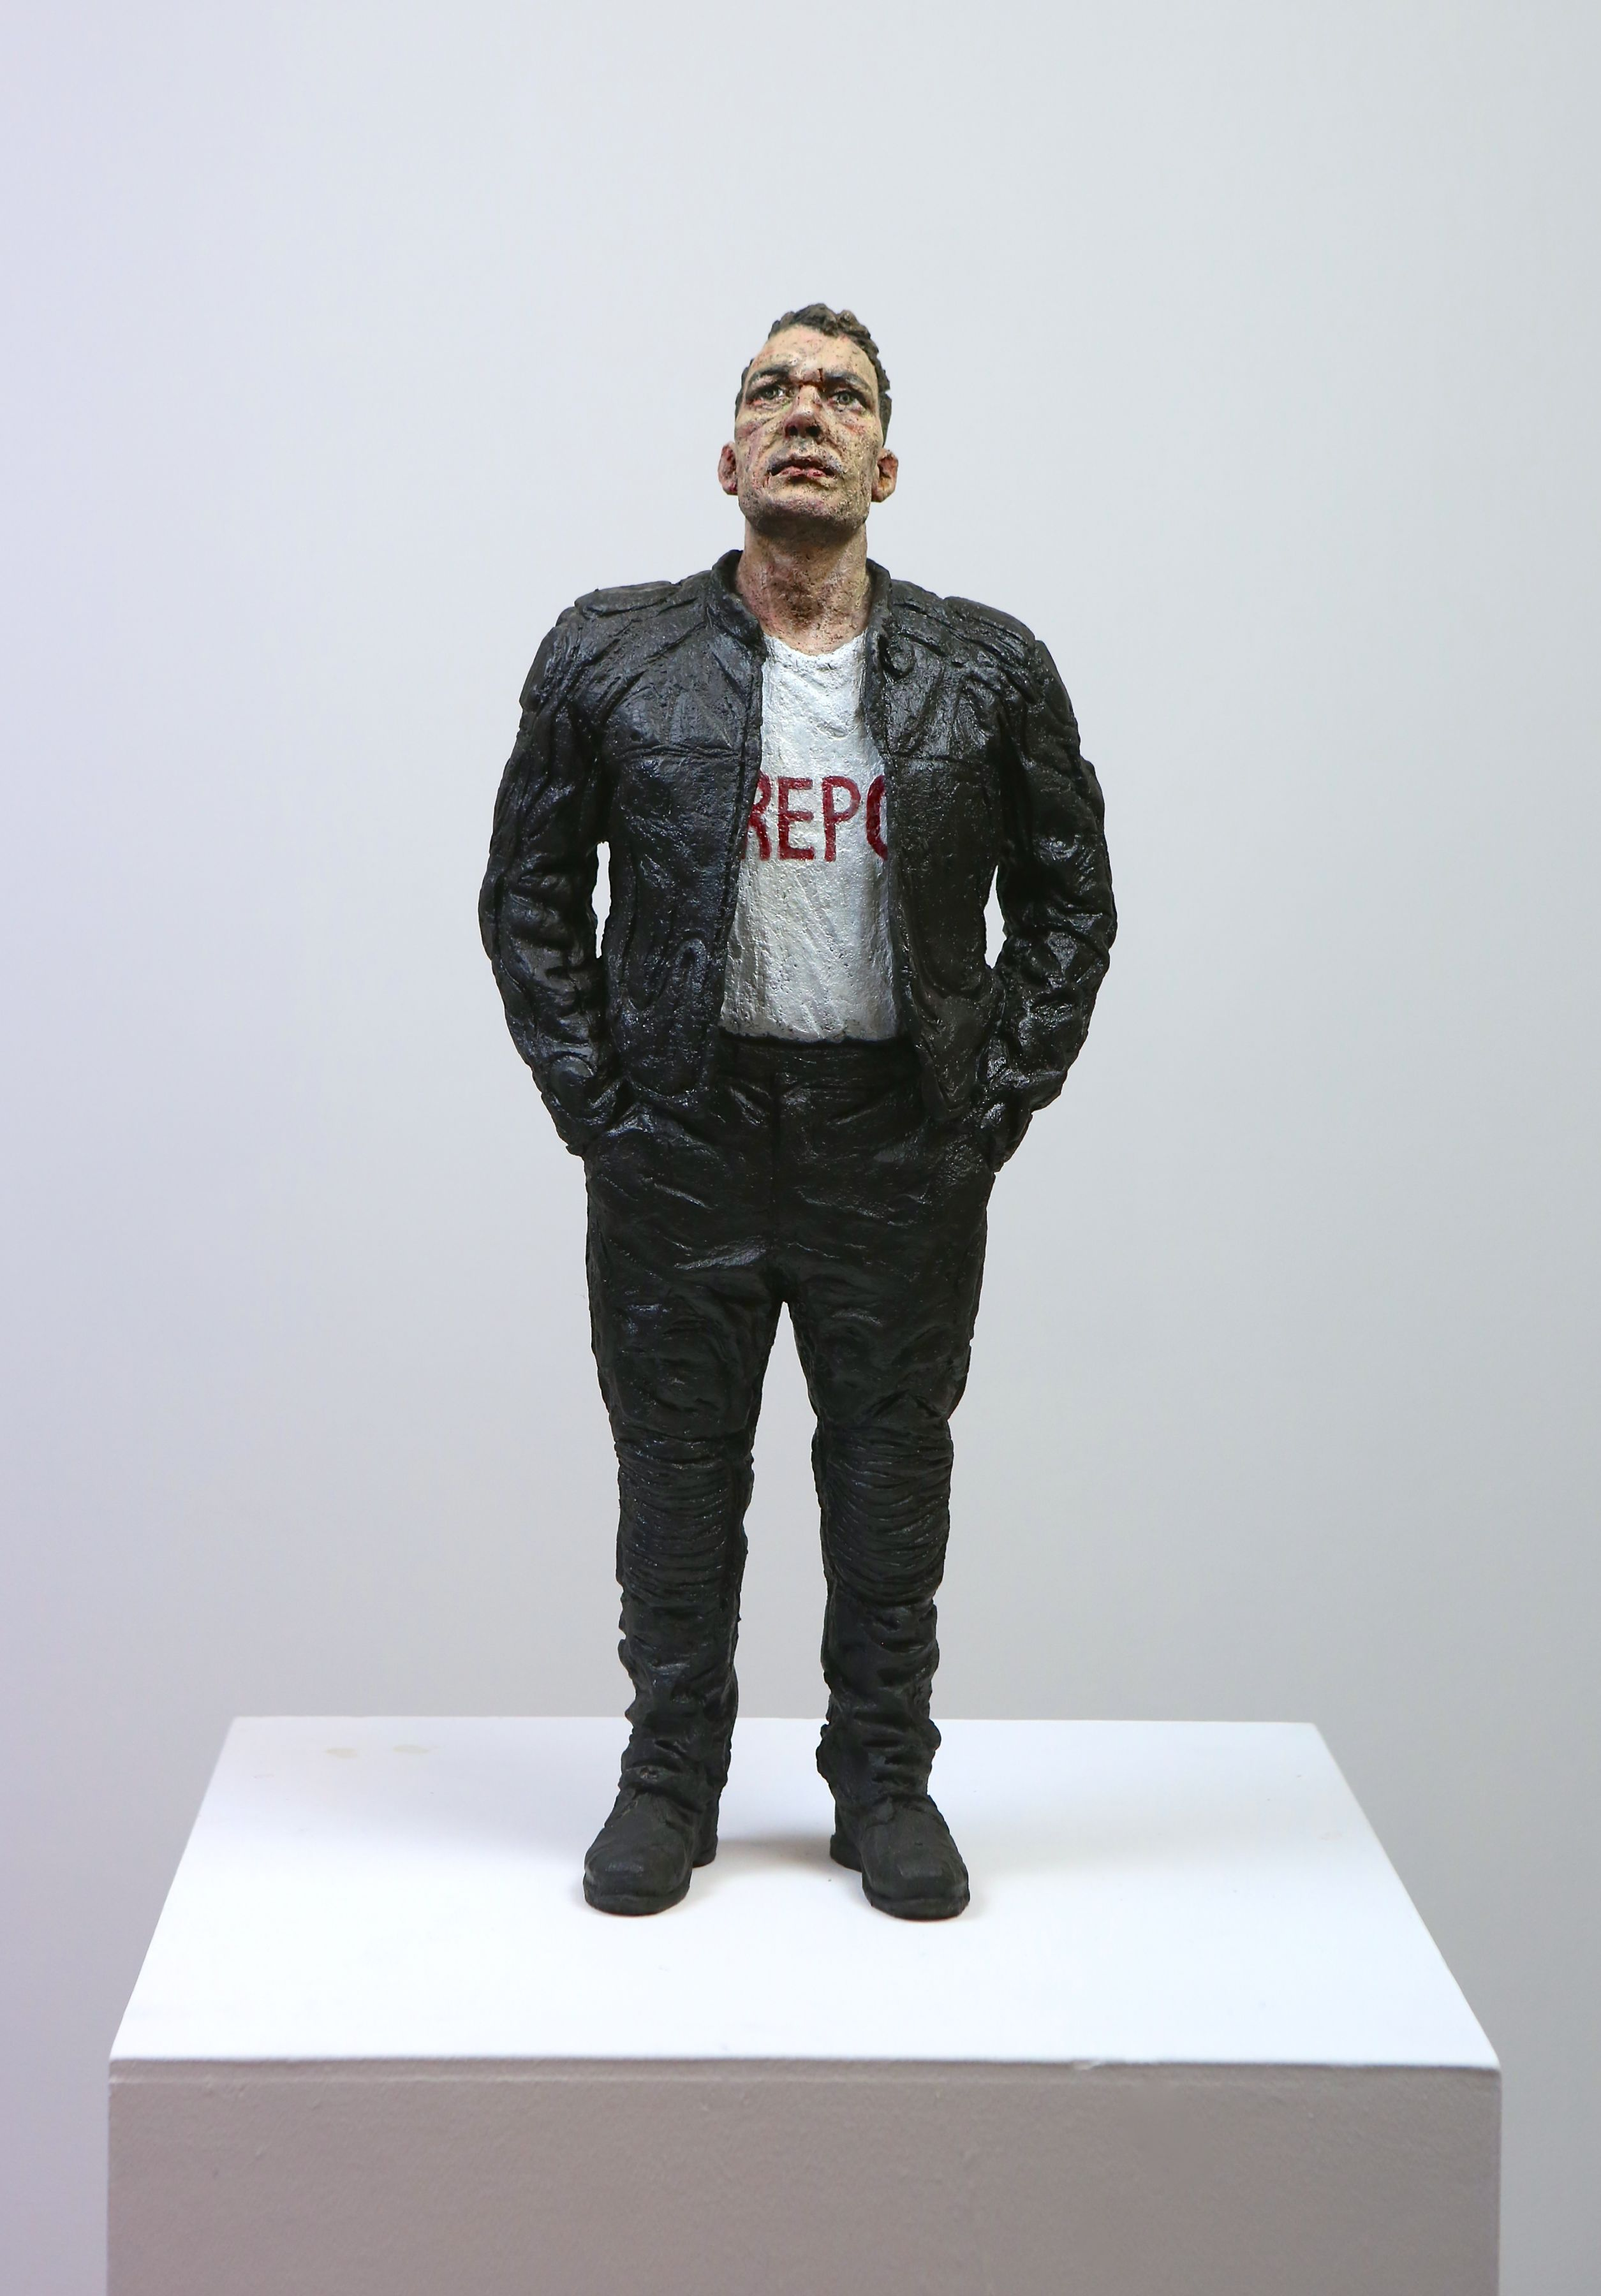 sean henry, Repo, 2014, bronze, oil paint, 21 x 8 3/4 x 5 1/2 inches, Edition of 9